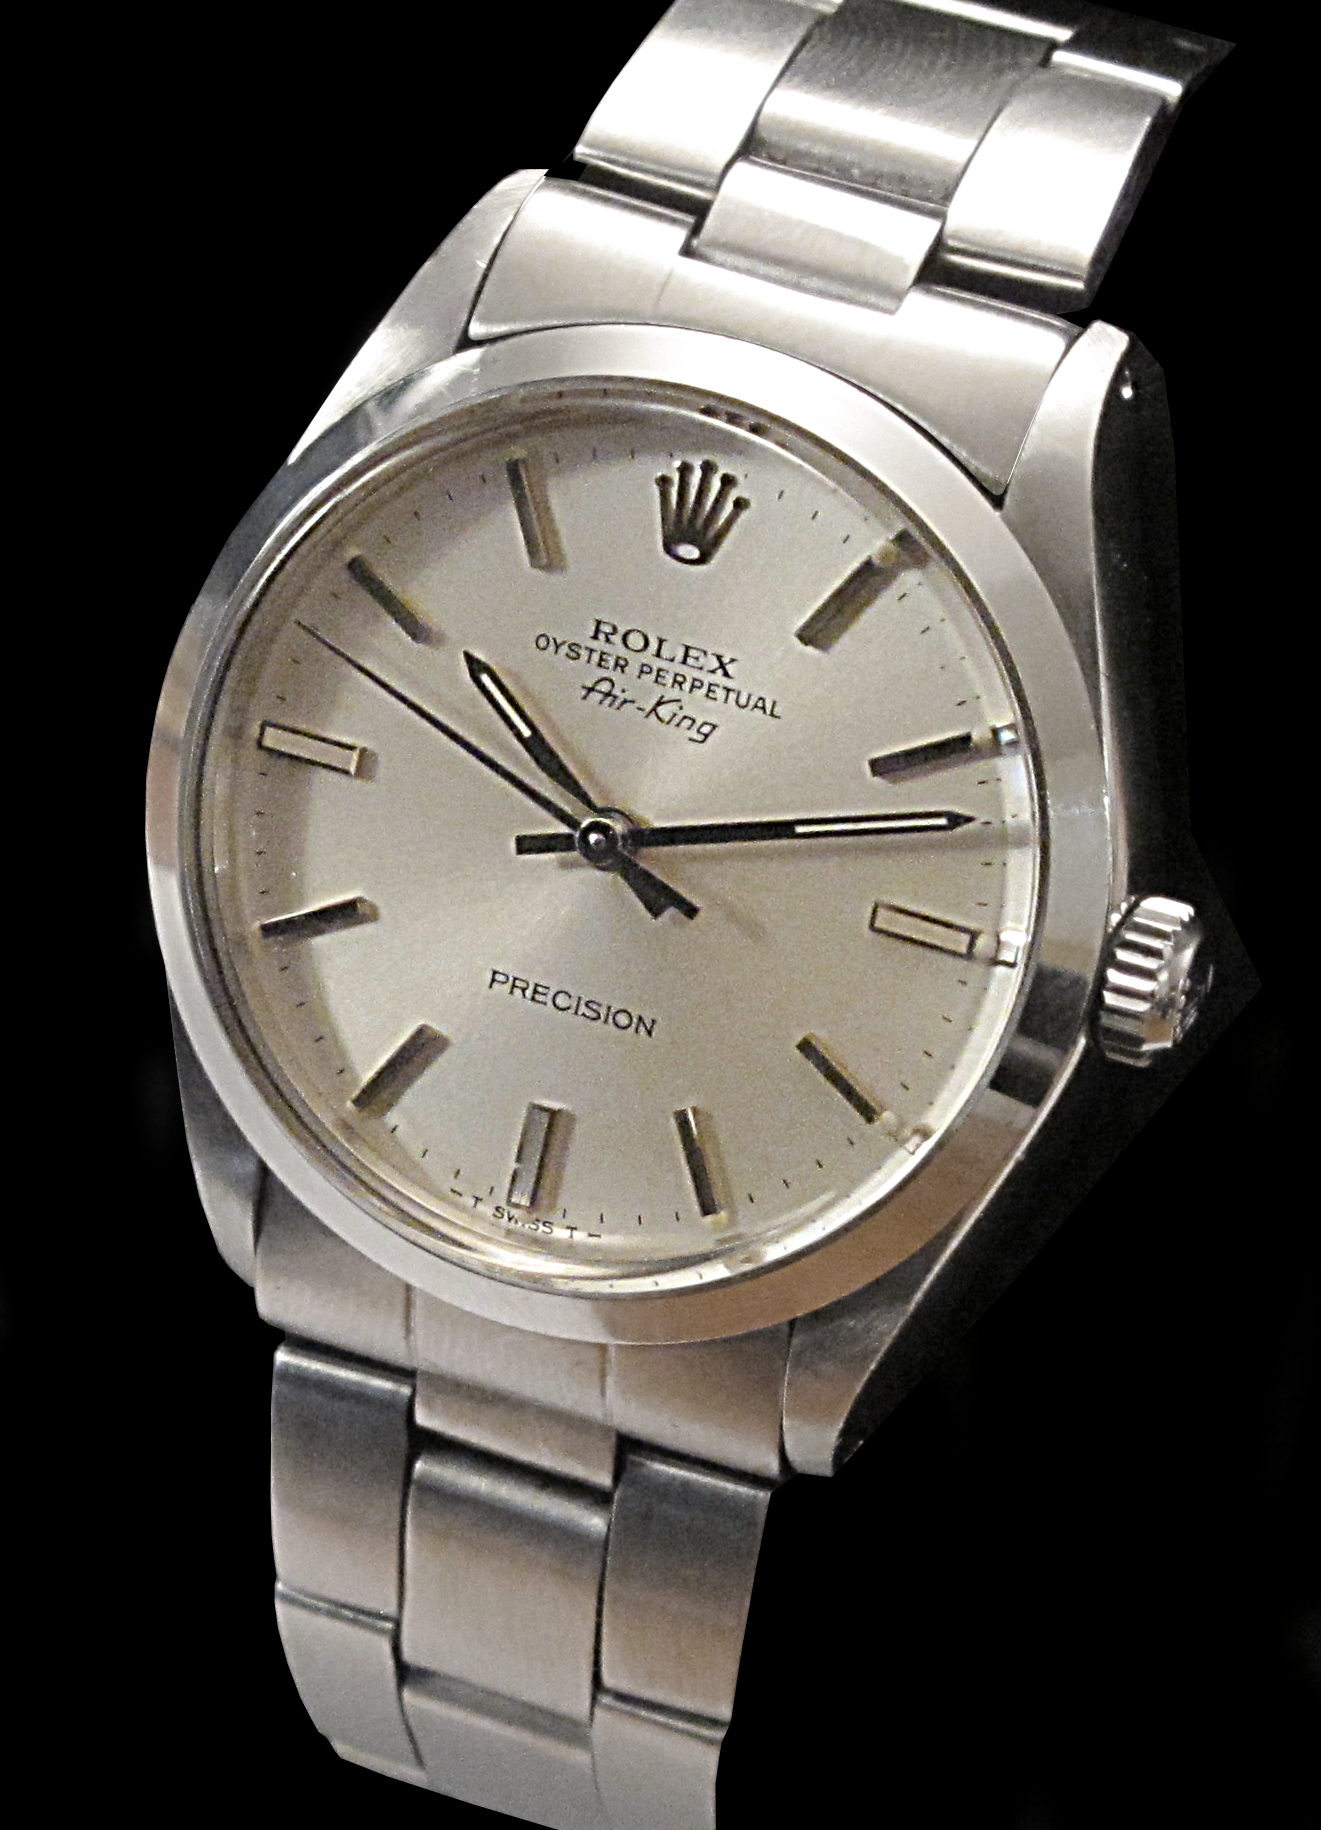 Rolex Oyster Perpetual Air King réf. 5500 La Rolex Air